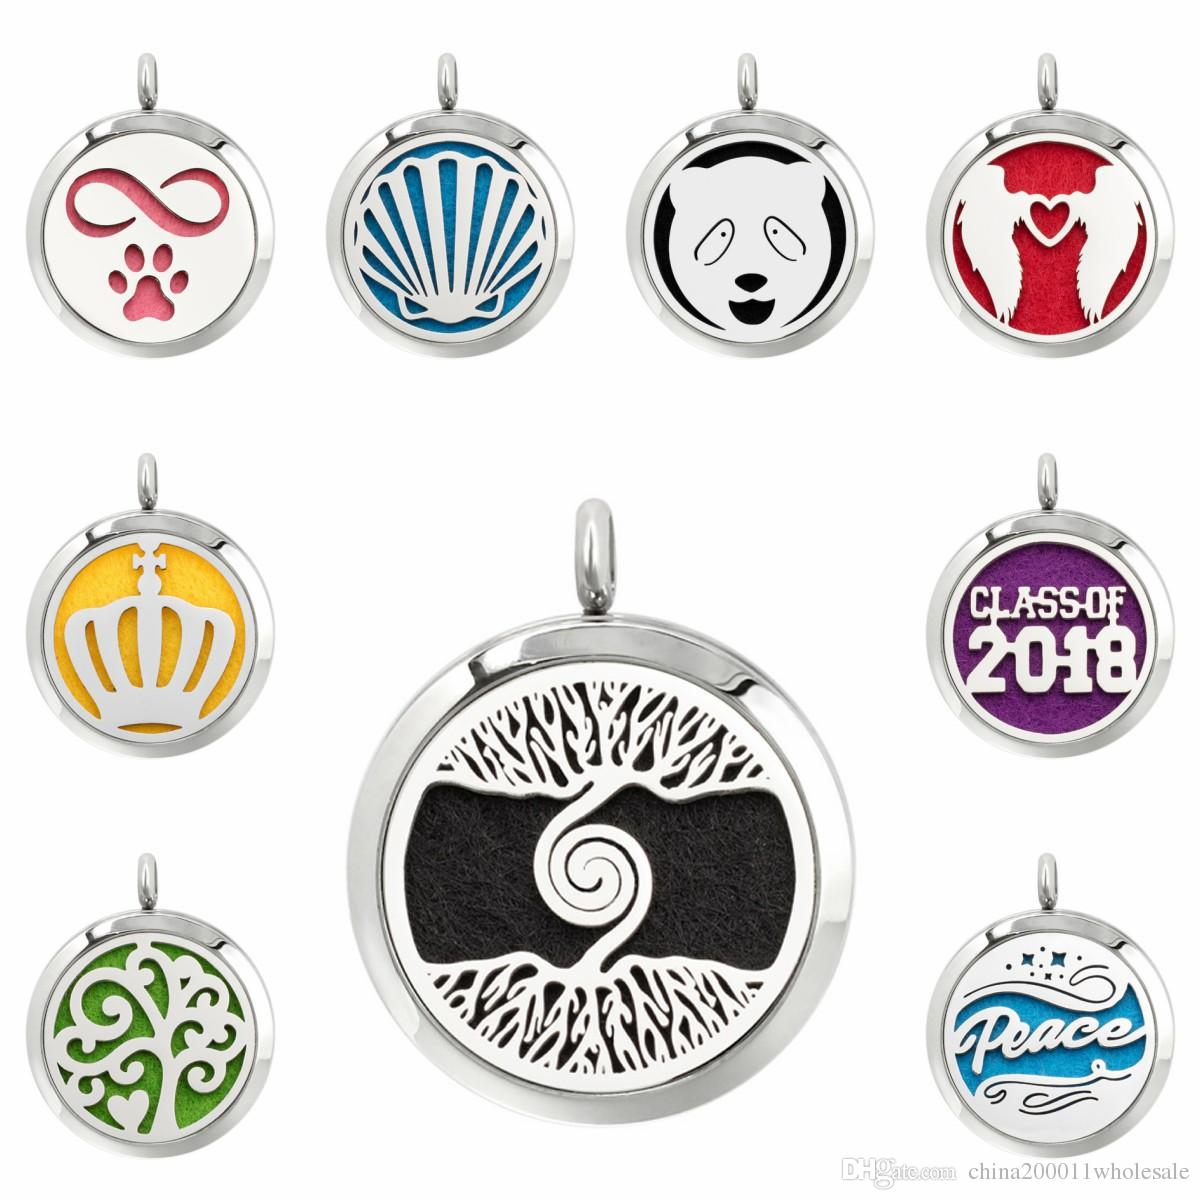 Tree of life infinity paw 30mm Magnet Stainless Steel Diffuser Necklace Pendant Essential Oil Aromatherapy Perfume locket 10 Pads (no chain)